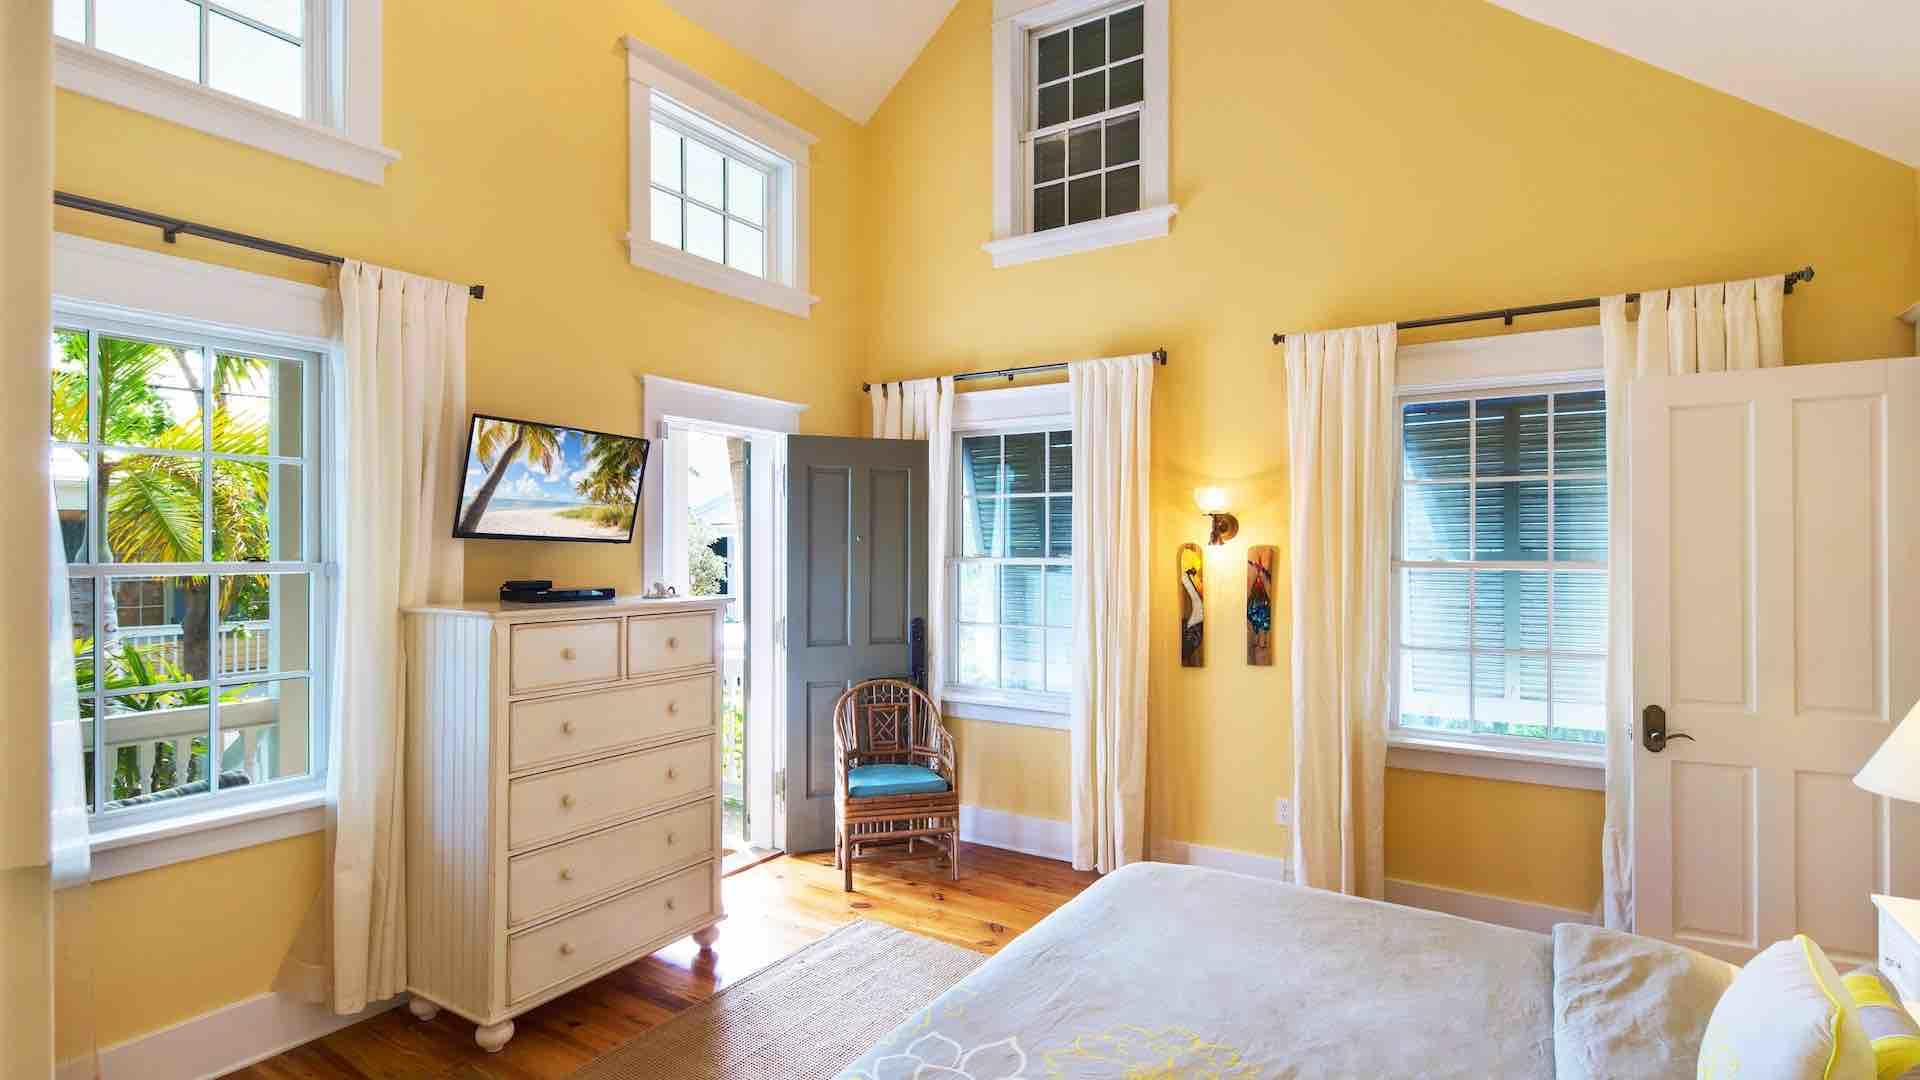 The second master bedroom is located at the front of the house with it's own entrance/exit...